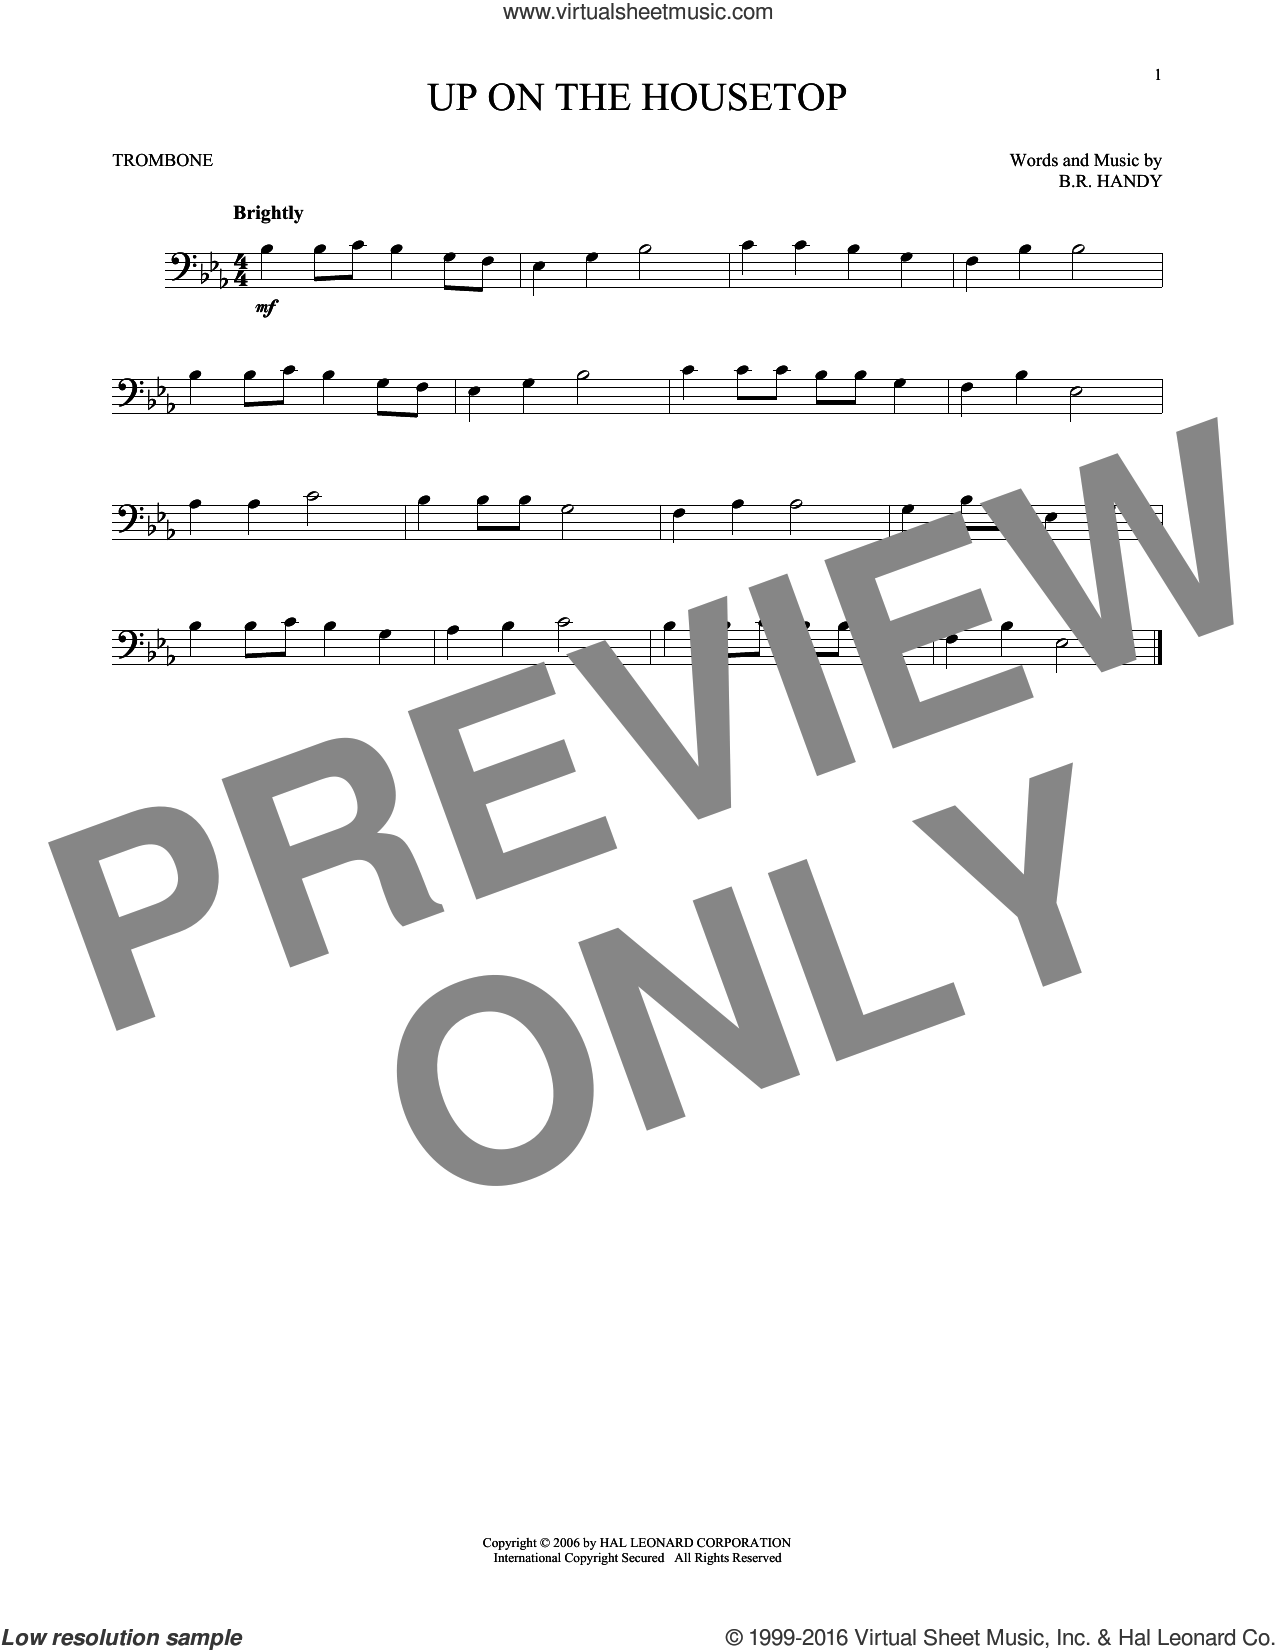 Up On The Housetop sheet music for trombone solo by Benjamin Hanby, intermediate skill level